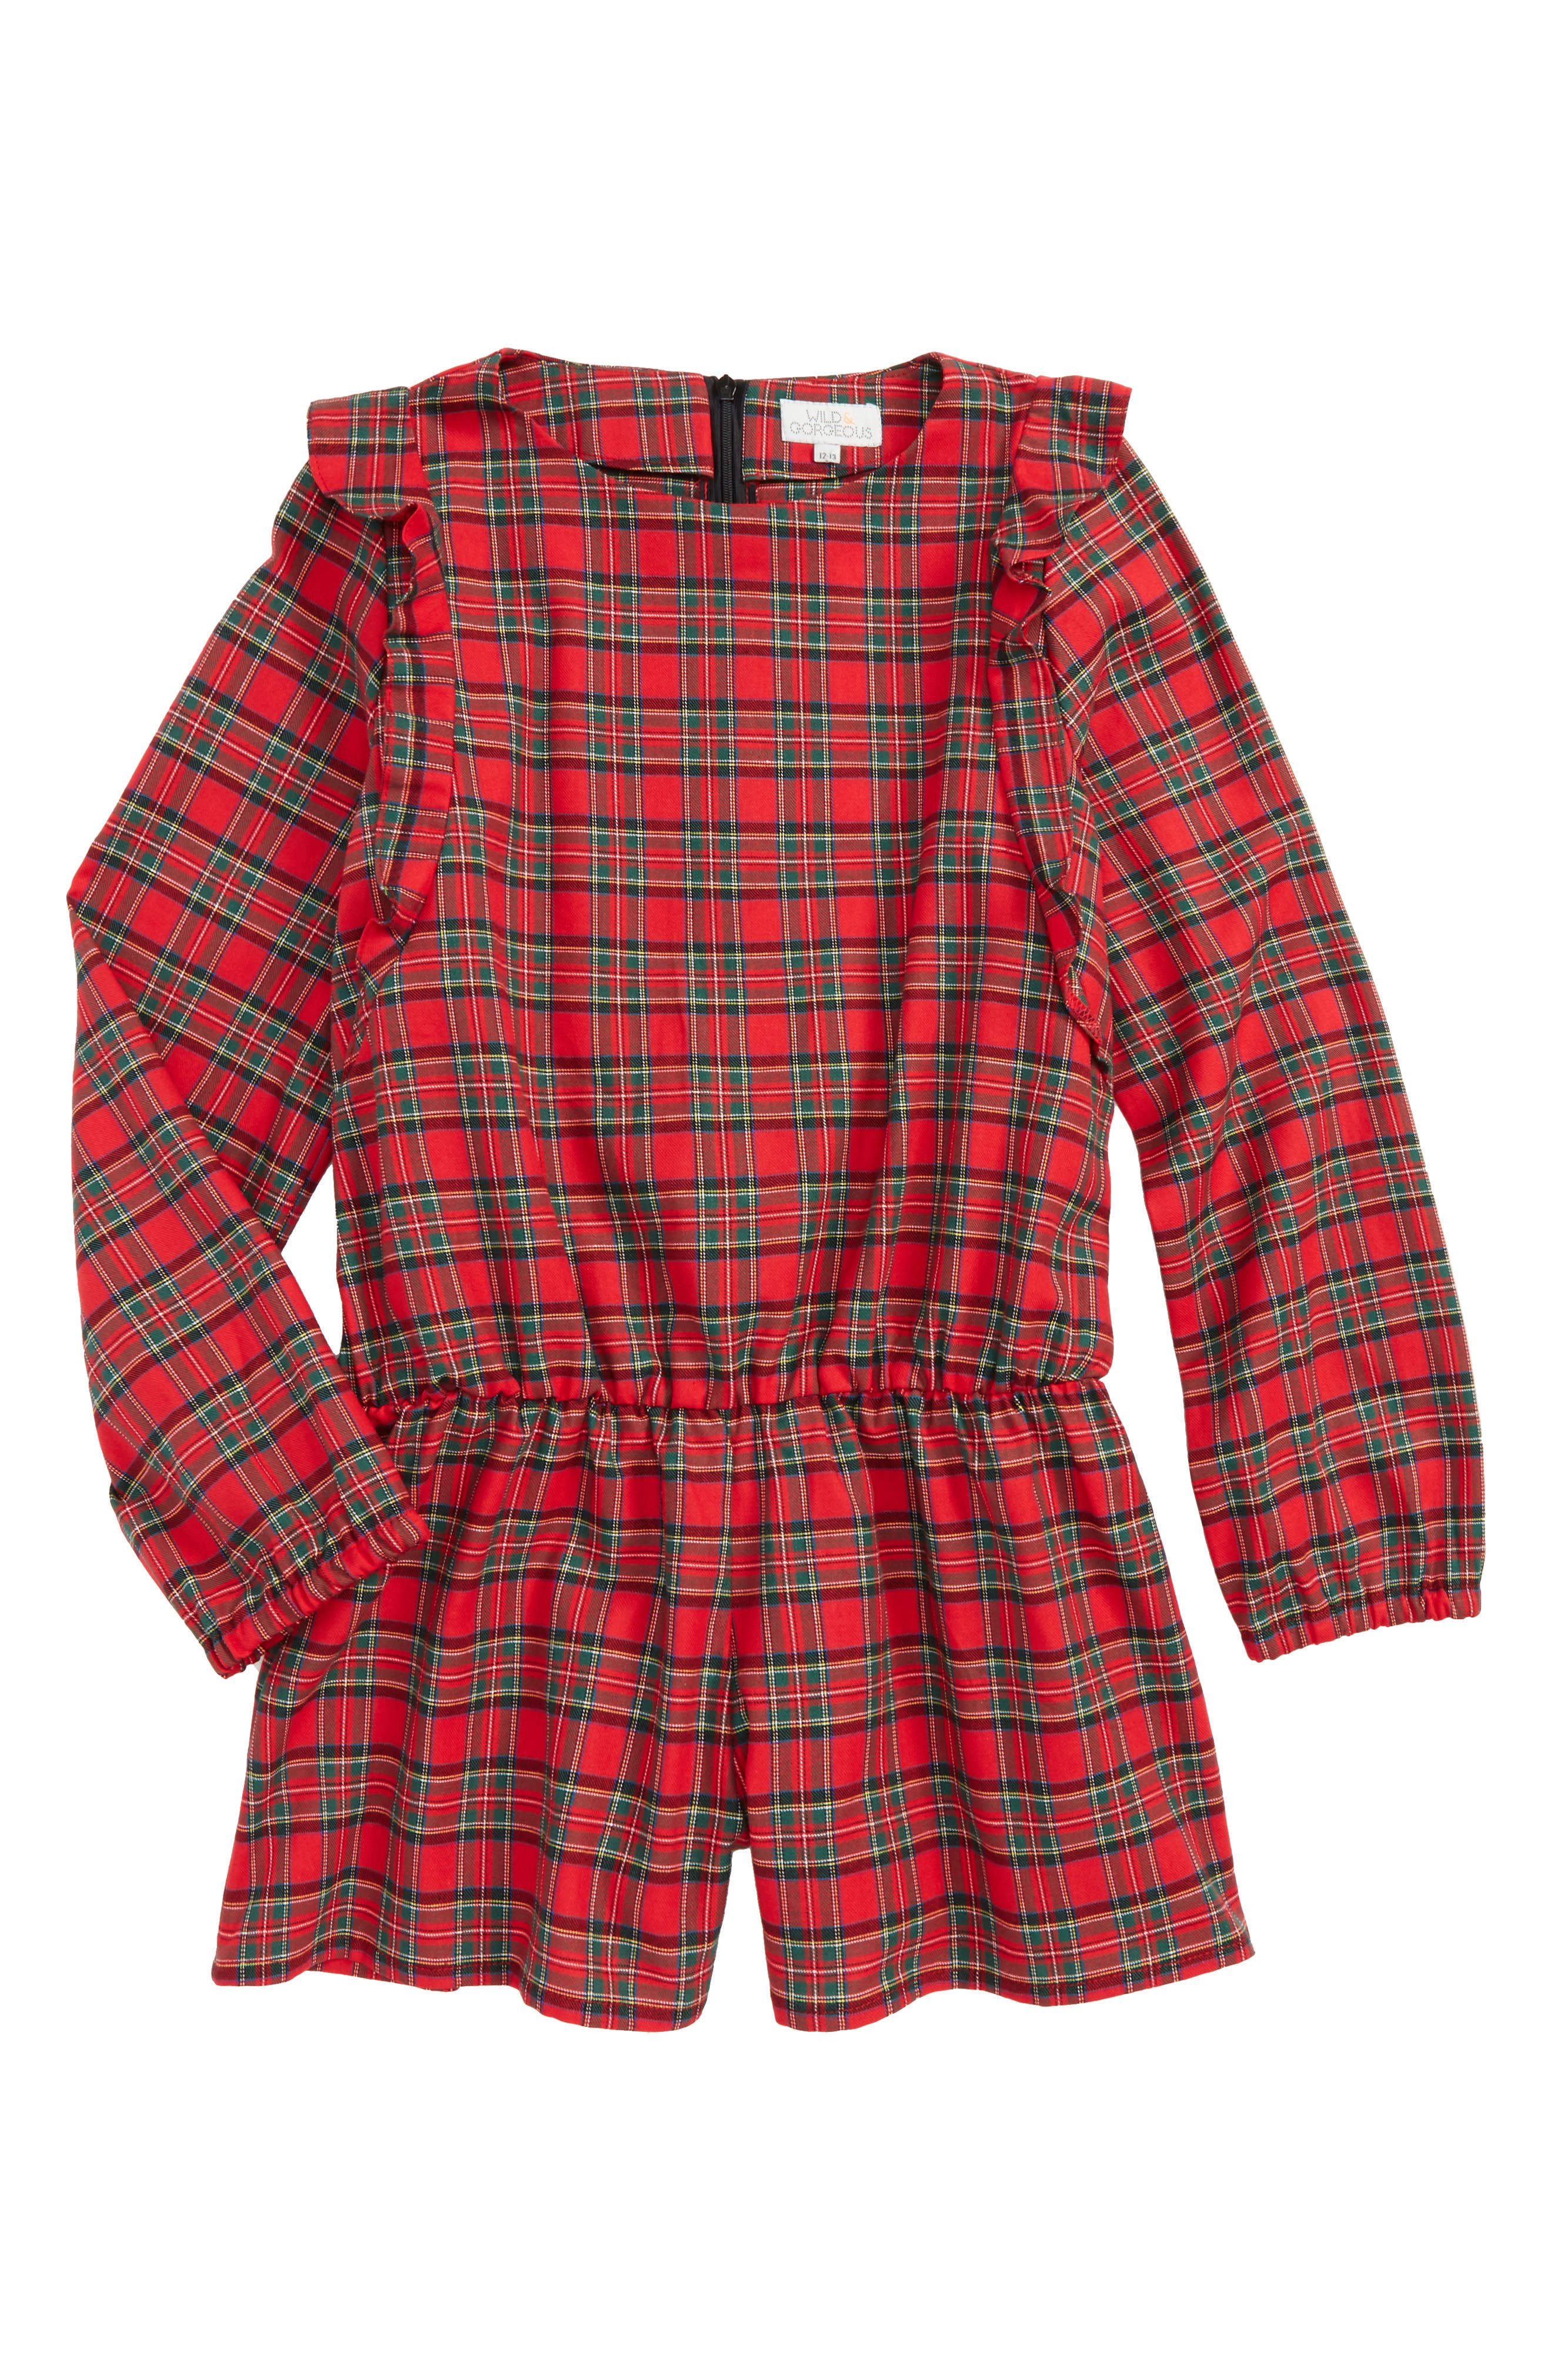 Alternate Image 1 Selected - Wild & Gorgeous Pam Plaid Romper (Little Girls & Big Girls)